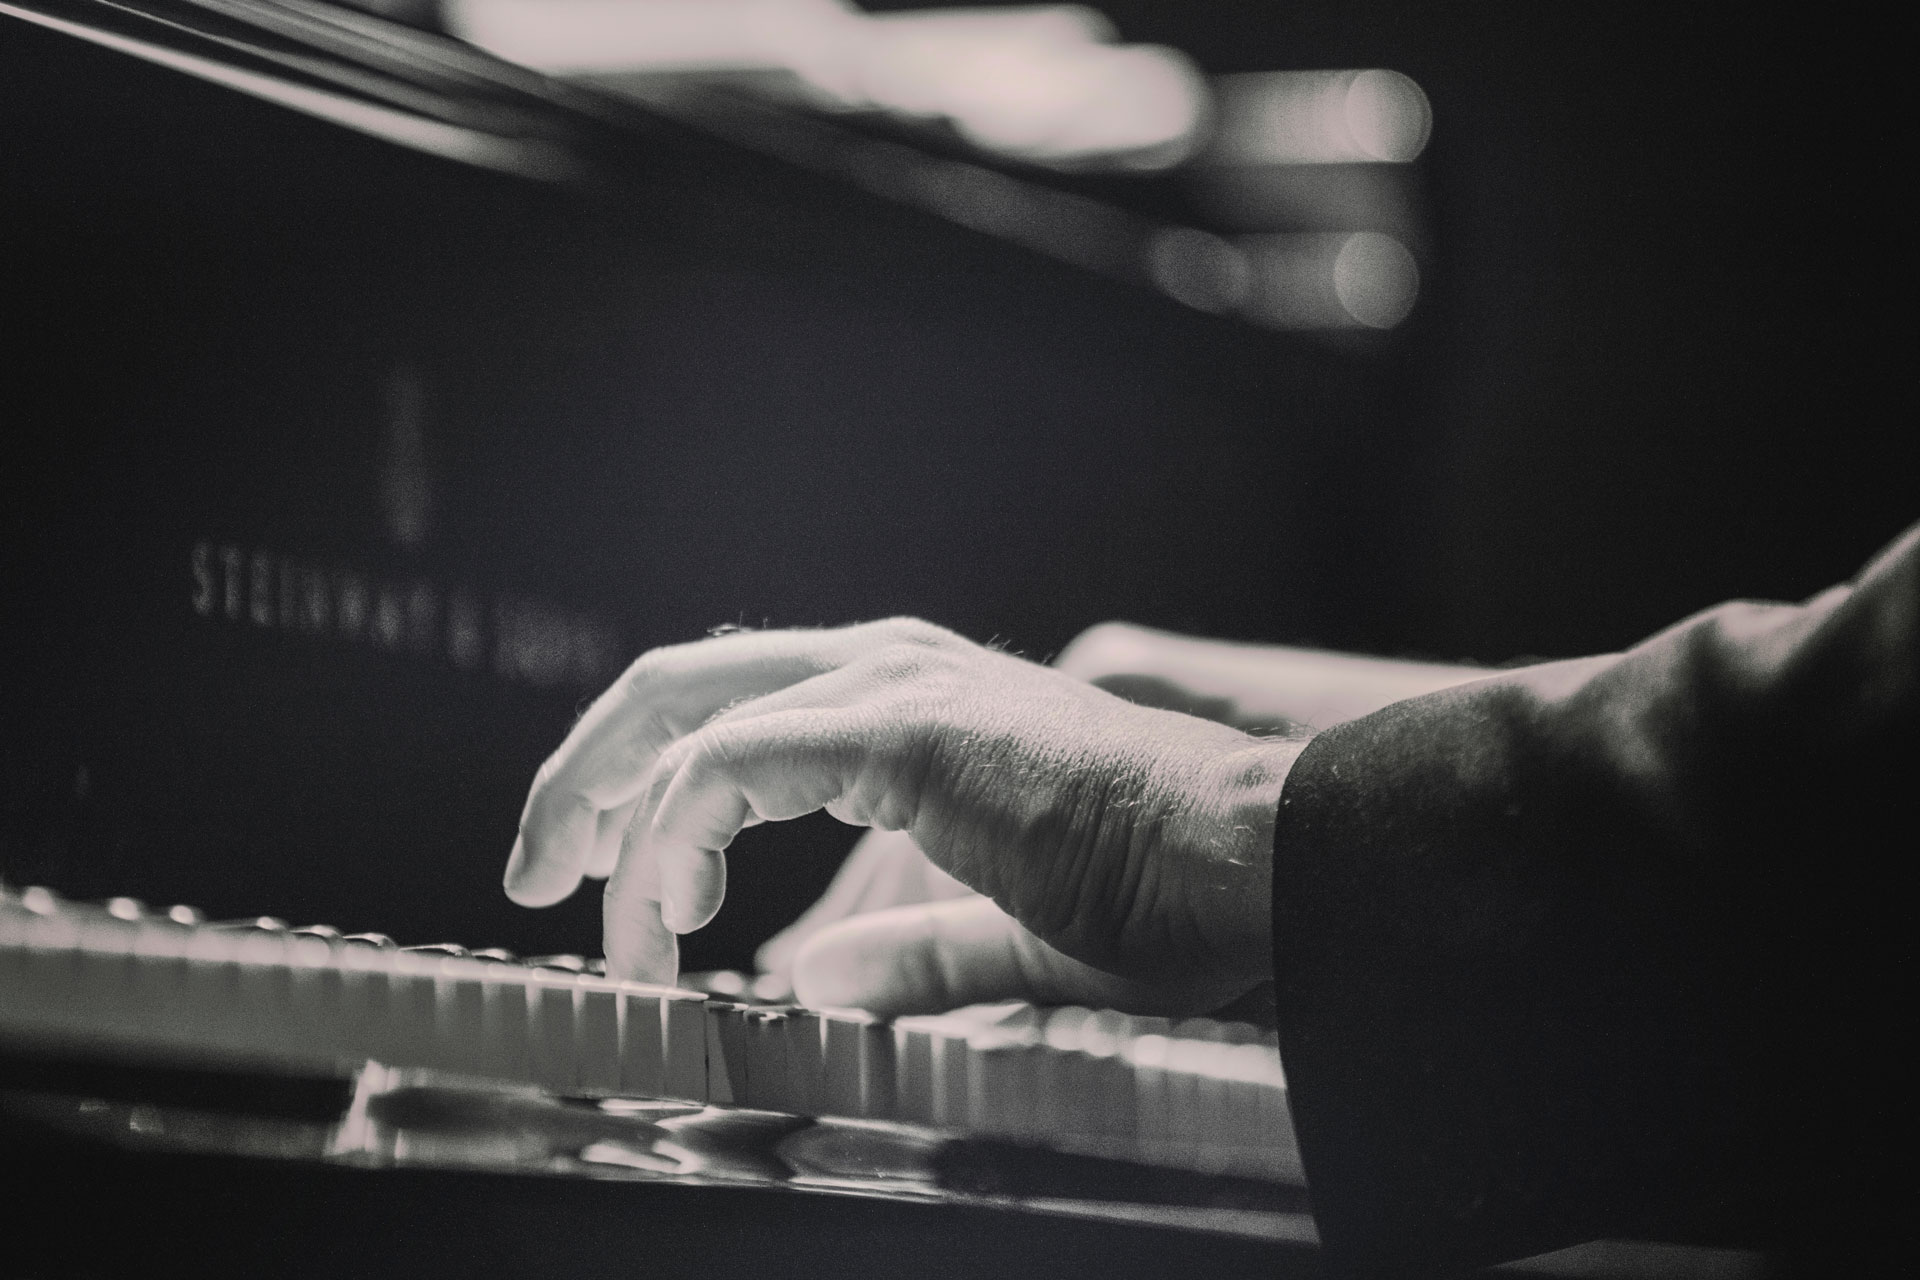 piano-ology-piano-technique-featured-photo-by-dolo-iglesias-on-unsplash